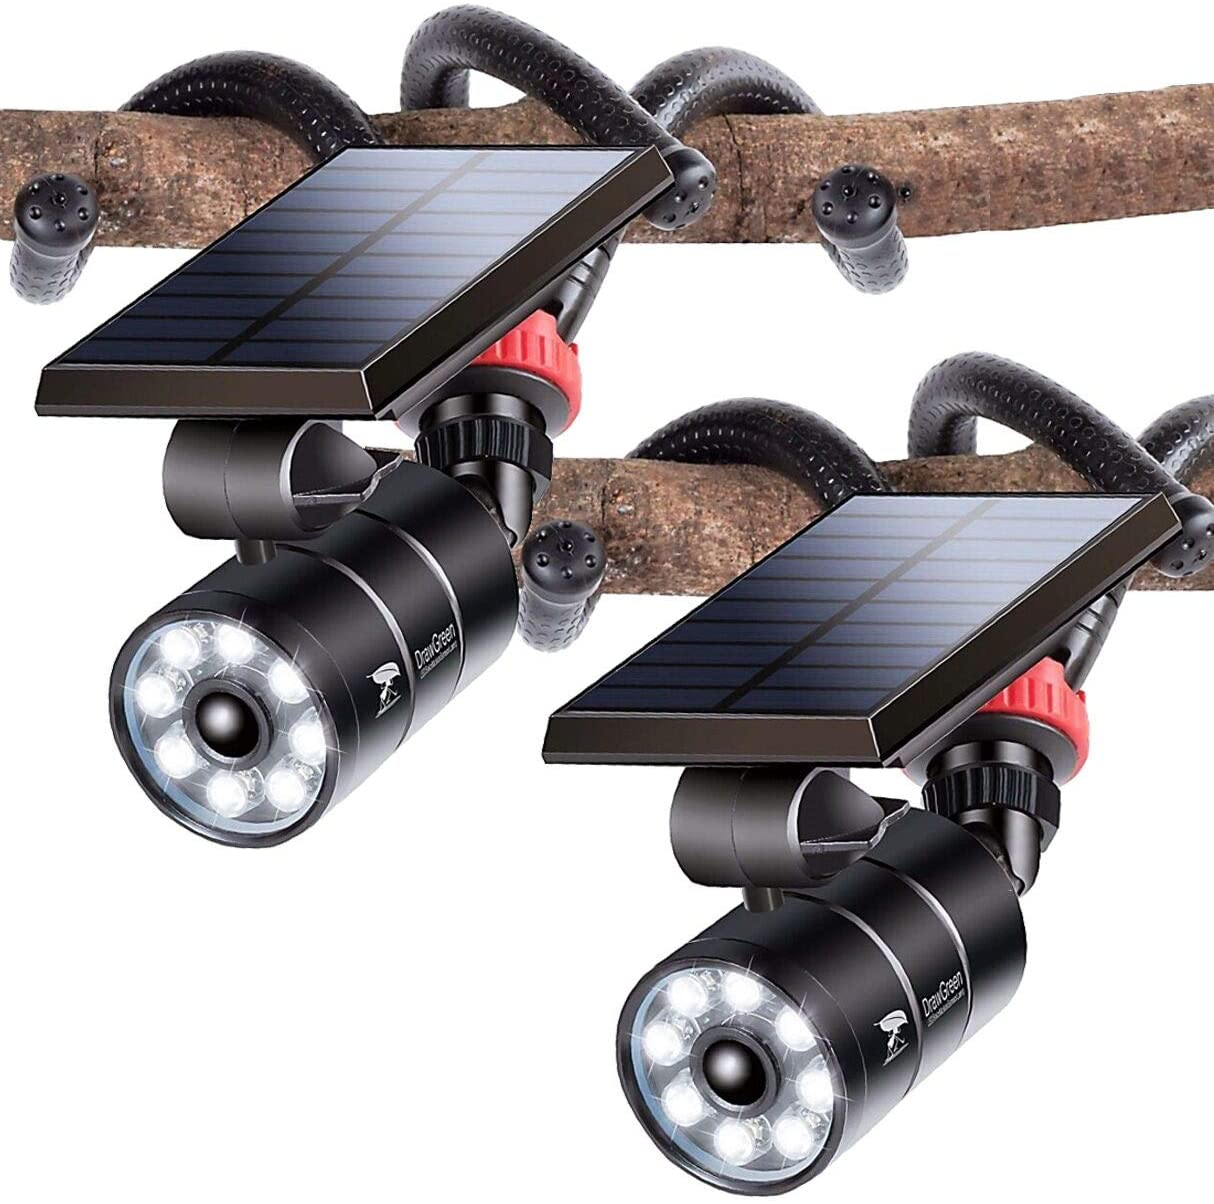 Outdoor Solar Motion Limited Product time cheap sale Sensor Camping Lights of Aluminum 1400 2 9W